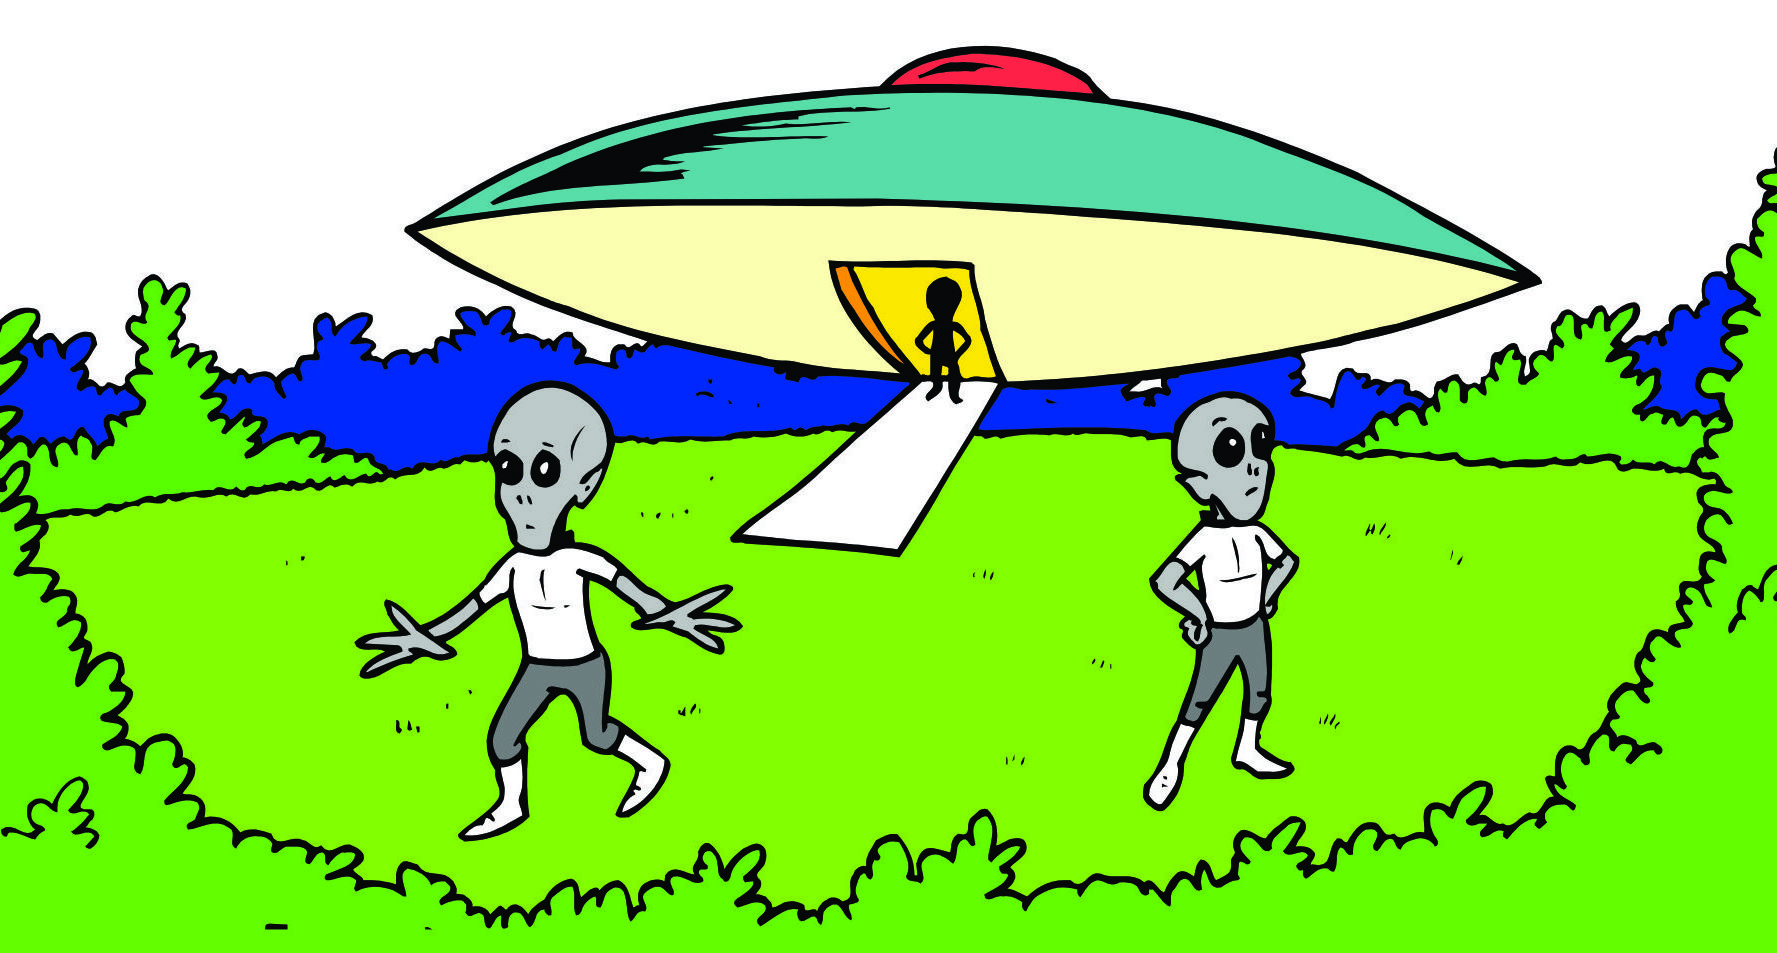 Sci Fi clipart cute alien spaceship #11